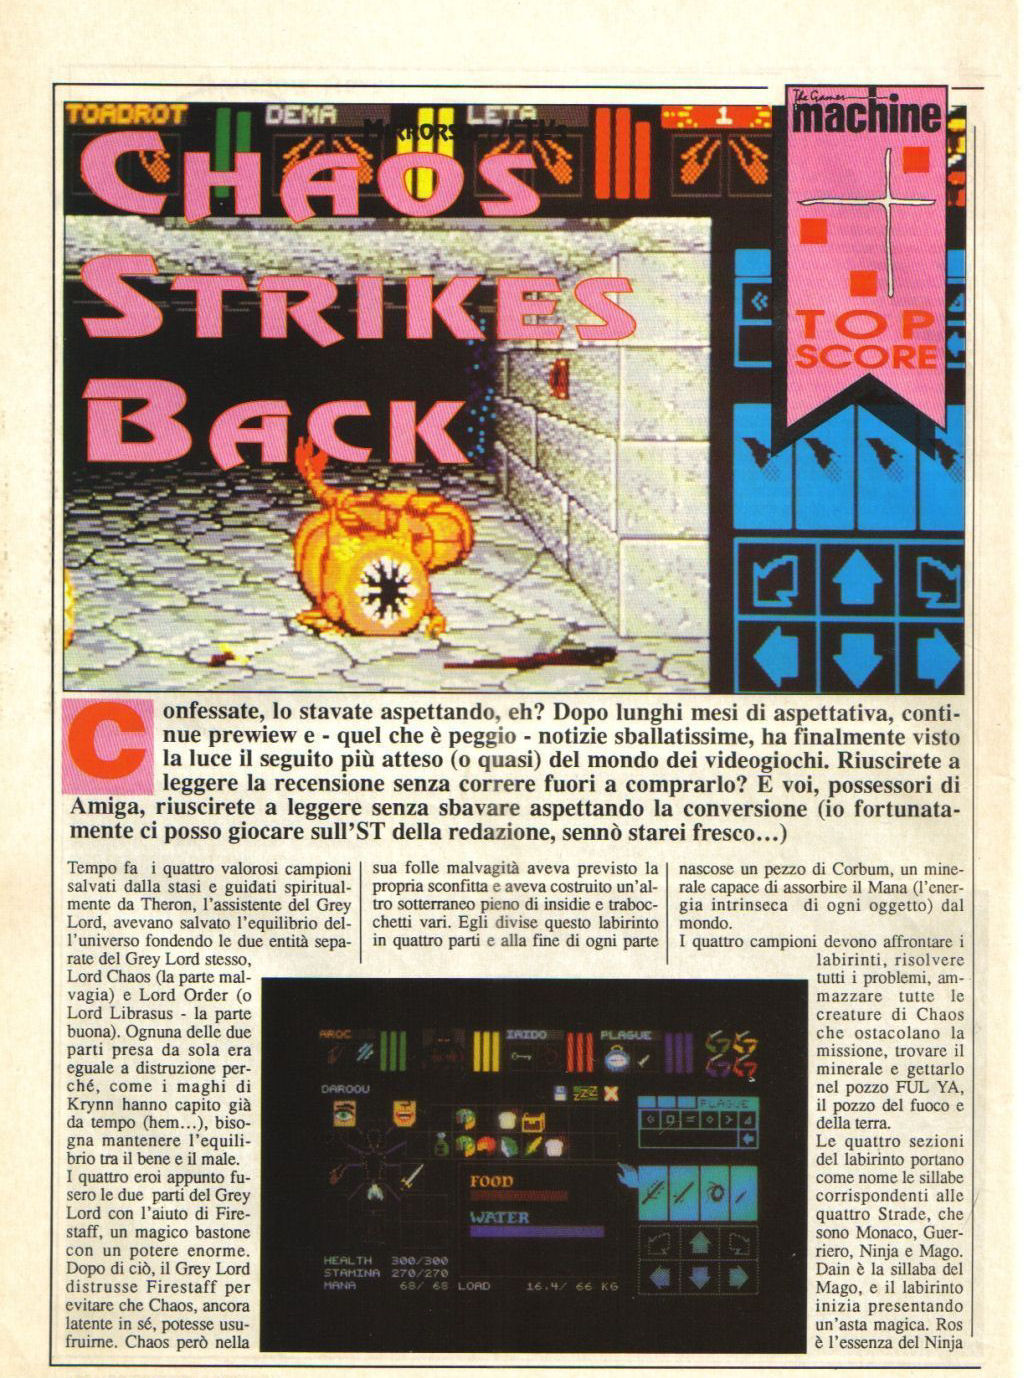 Chaos Strikes Back for Atari ST Review published in Italian magazine 'The Game Machine', Issue #18, March 1990, Page 24